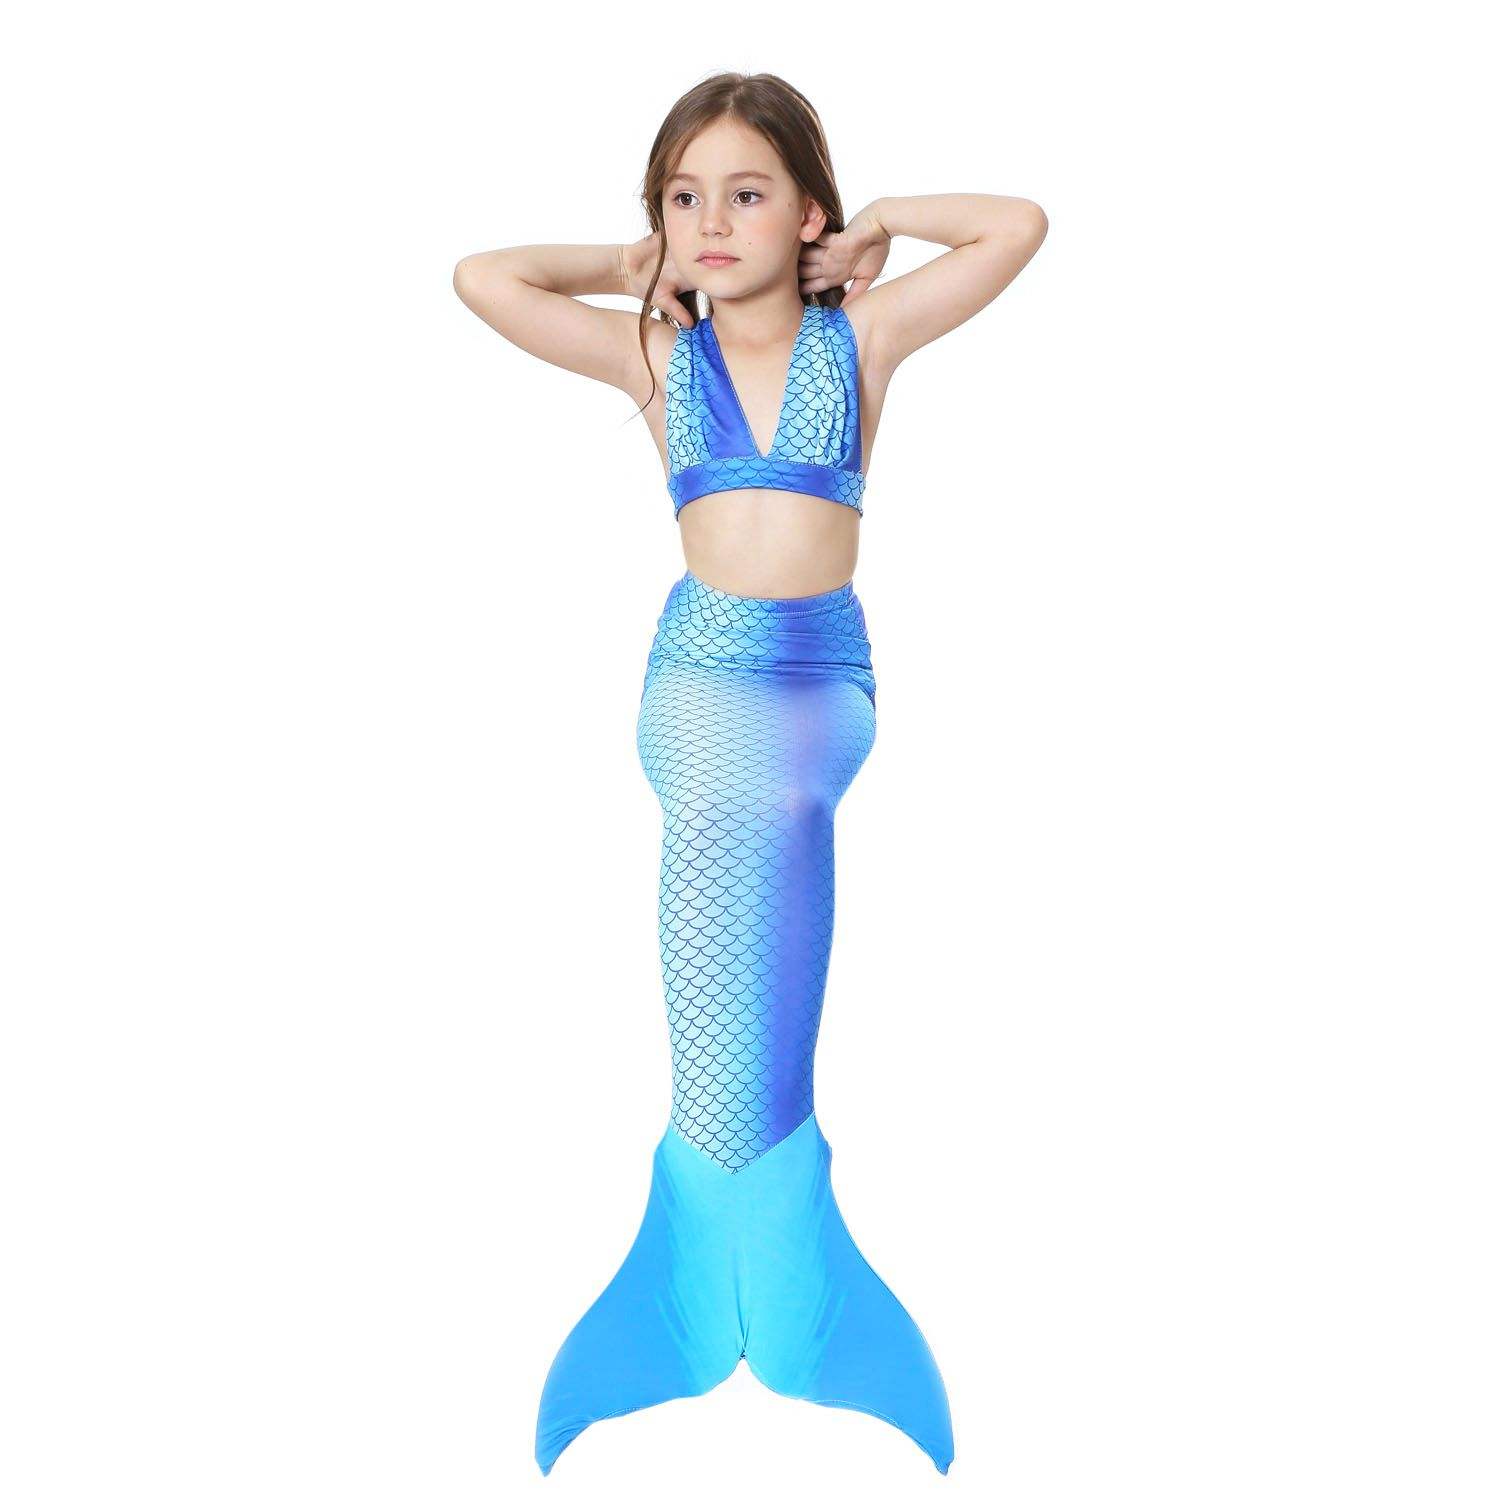 e4d2403cfb8 Mermaid Swimsuit for Baby Girl Mermaid Tail Bikini Suit Swimwear INS ...